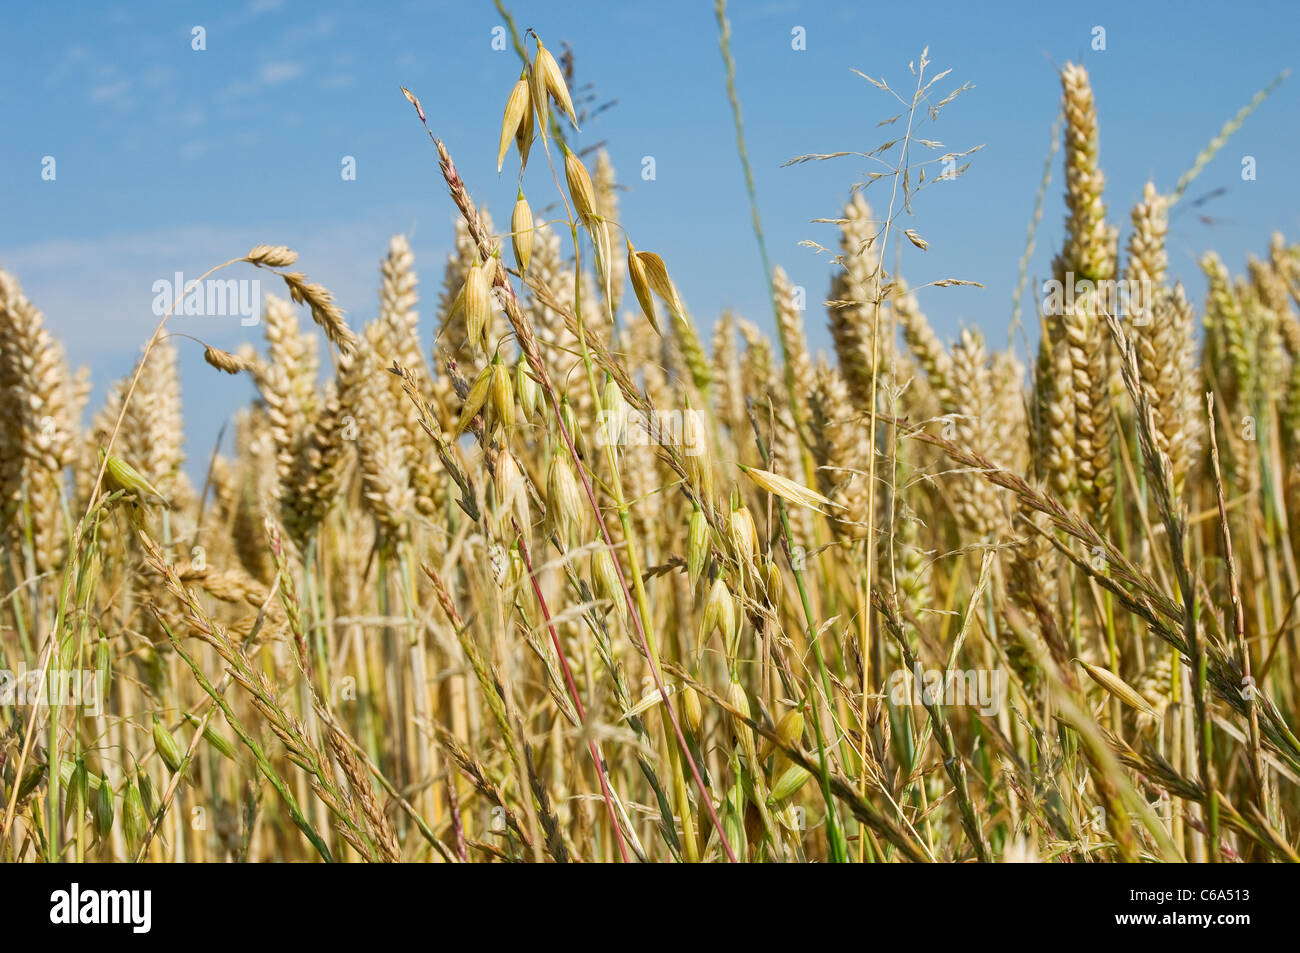 Close up of wheat and oats in field North Yorkshire England UK United Kingdom GB Great Britain - Stock Image